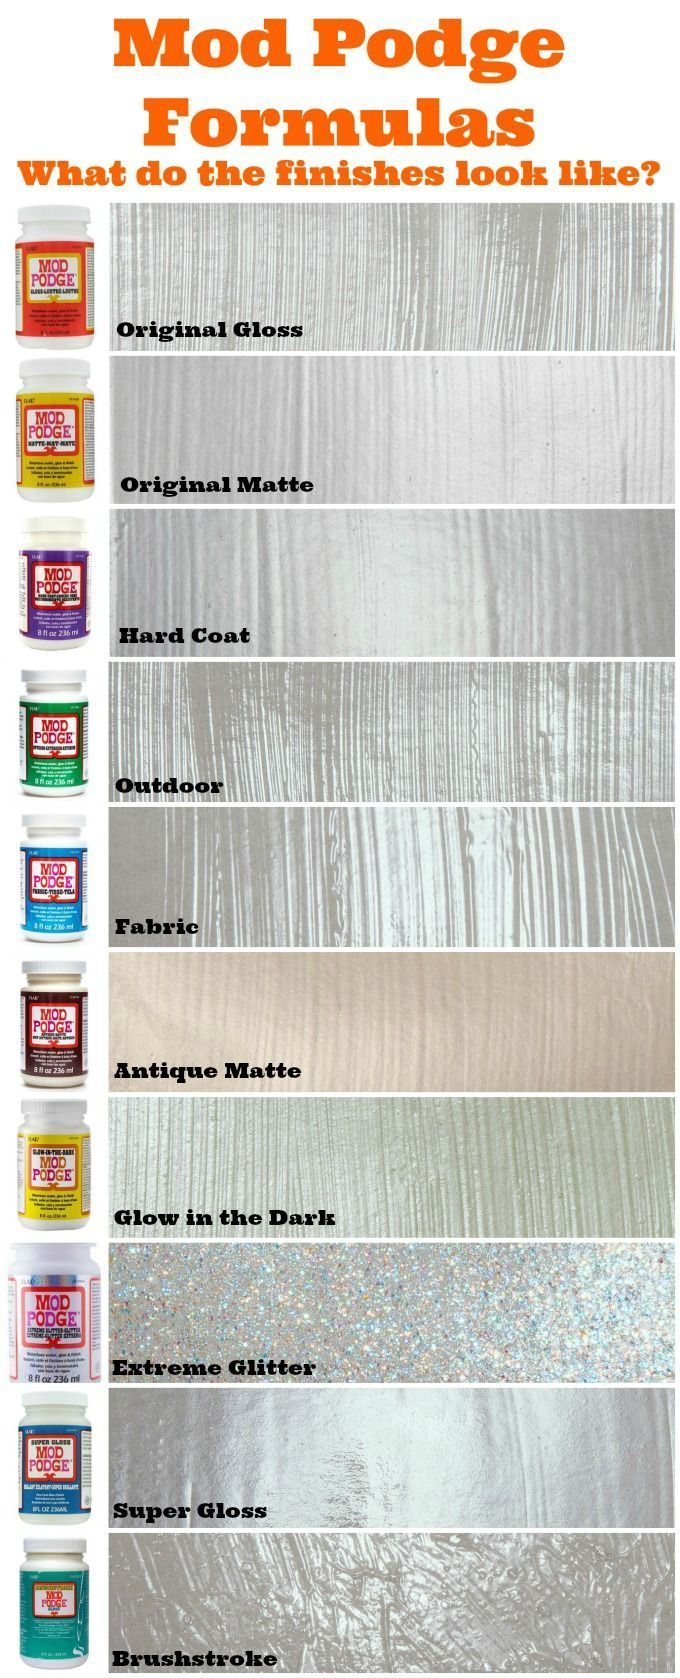 Are you curious what the Mod Podge formulas look like when they are dry? Click through for this handy dandy guide! #podpodge #craft #recipe